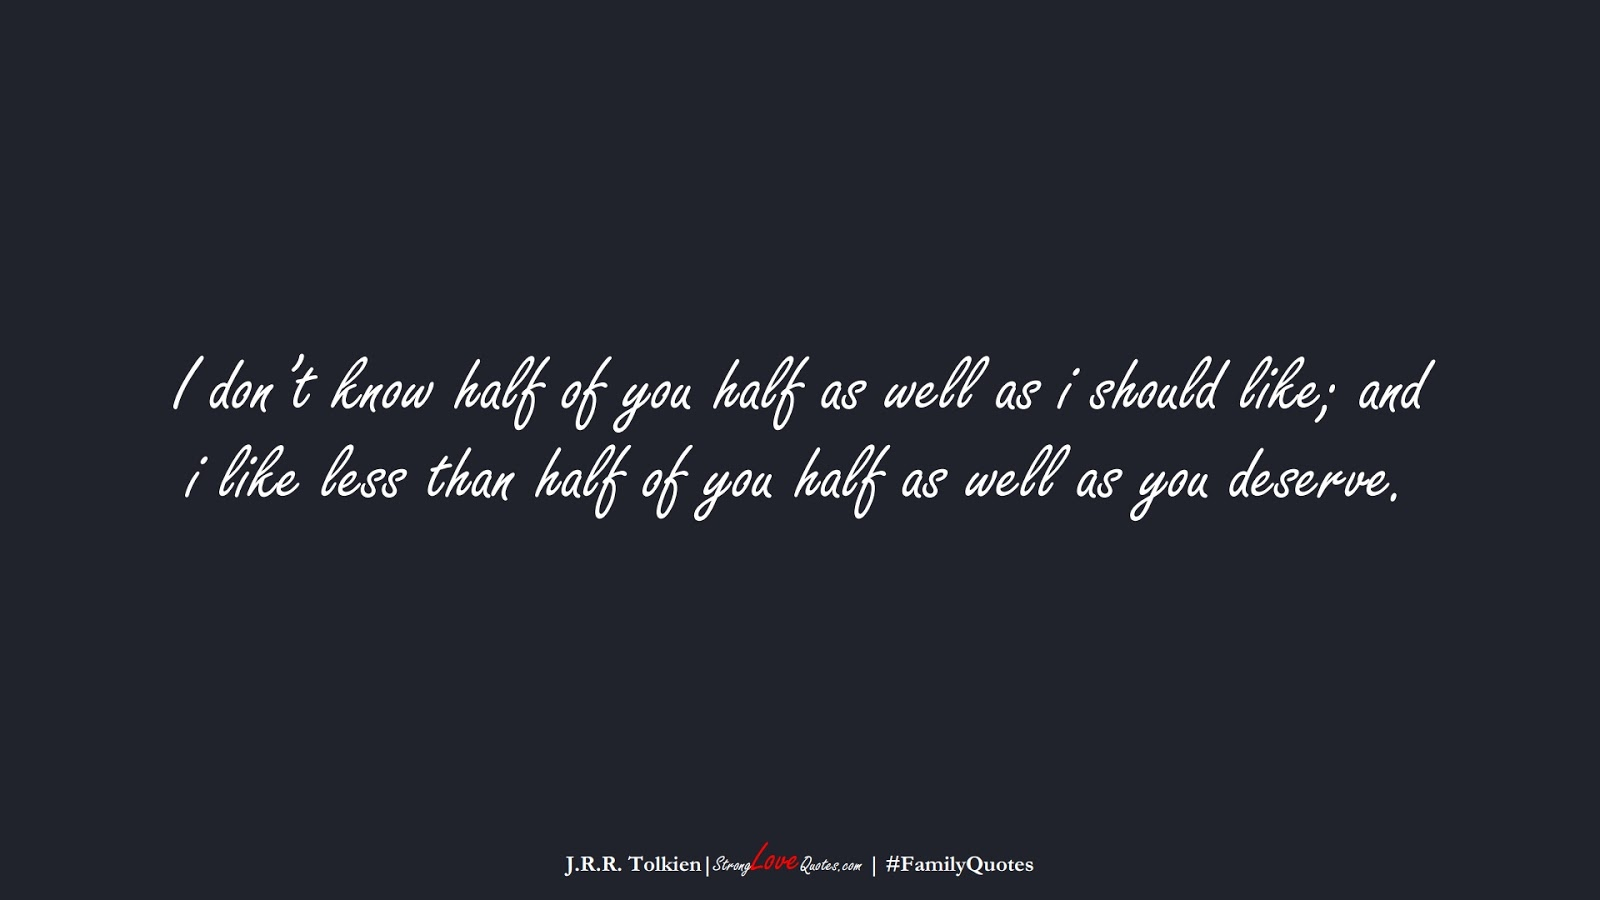 I don't know half of you half as well as i should like; and i like less than half of you half as well as you deserve. (J.R.R. Tolkien);  #FamilyQuotes